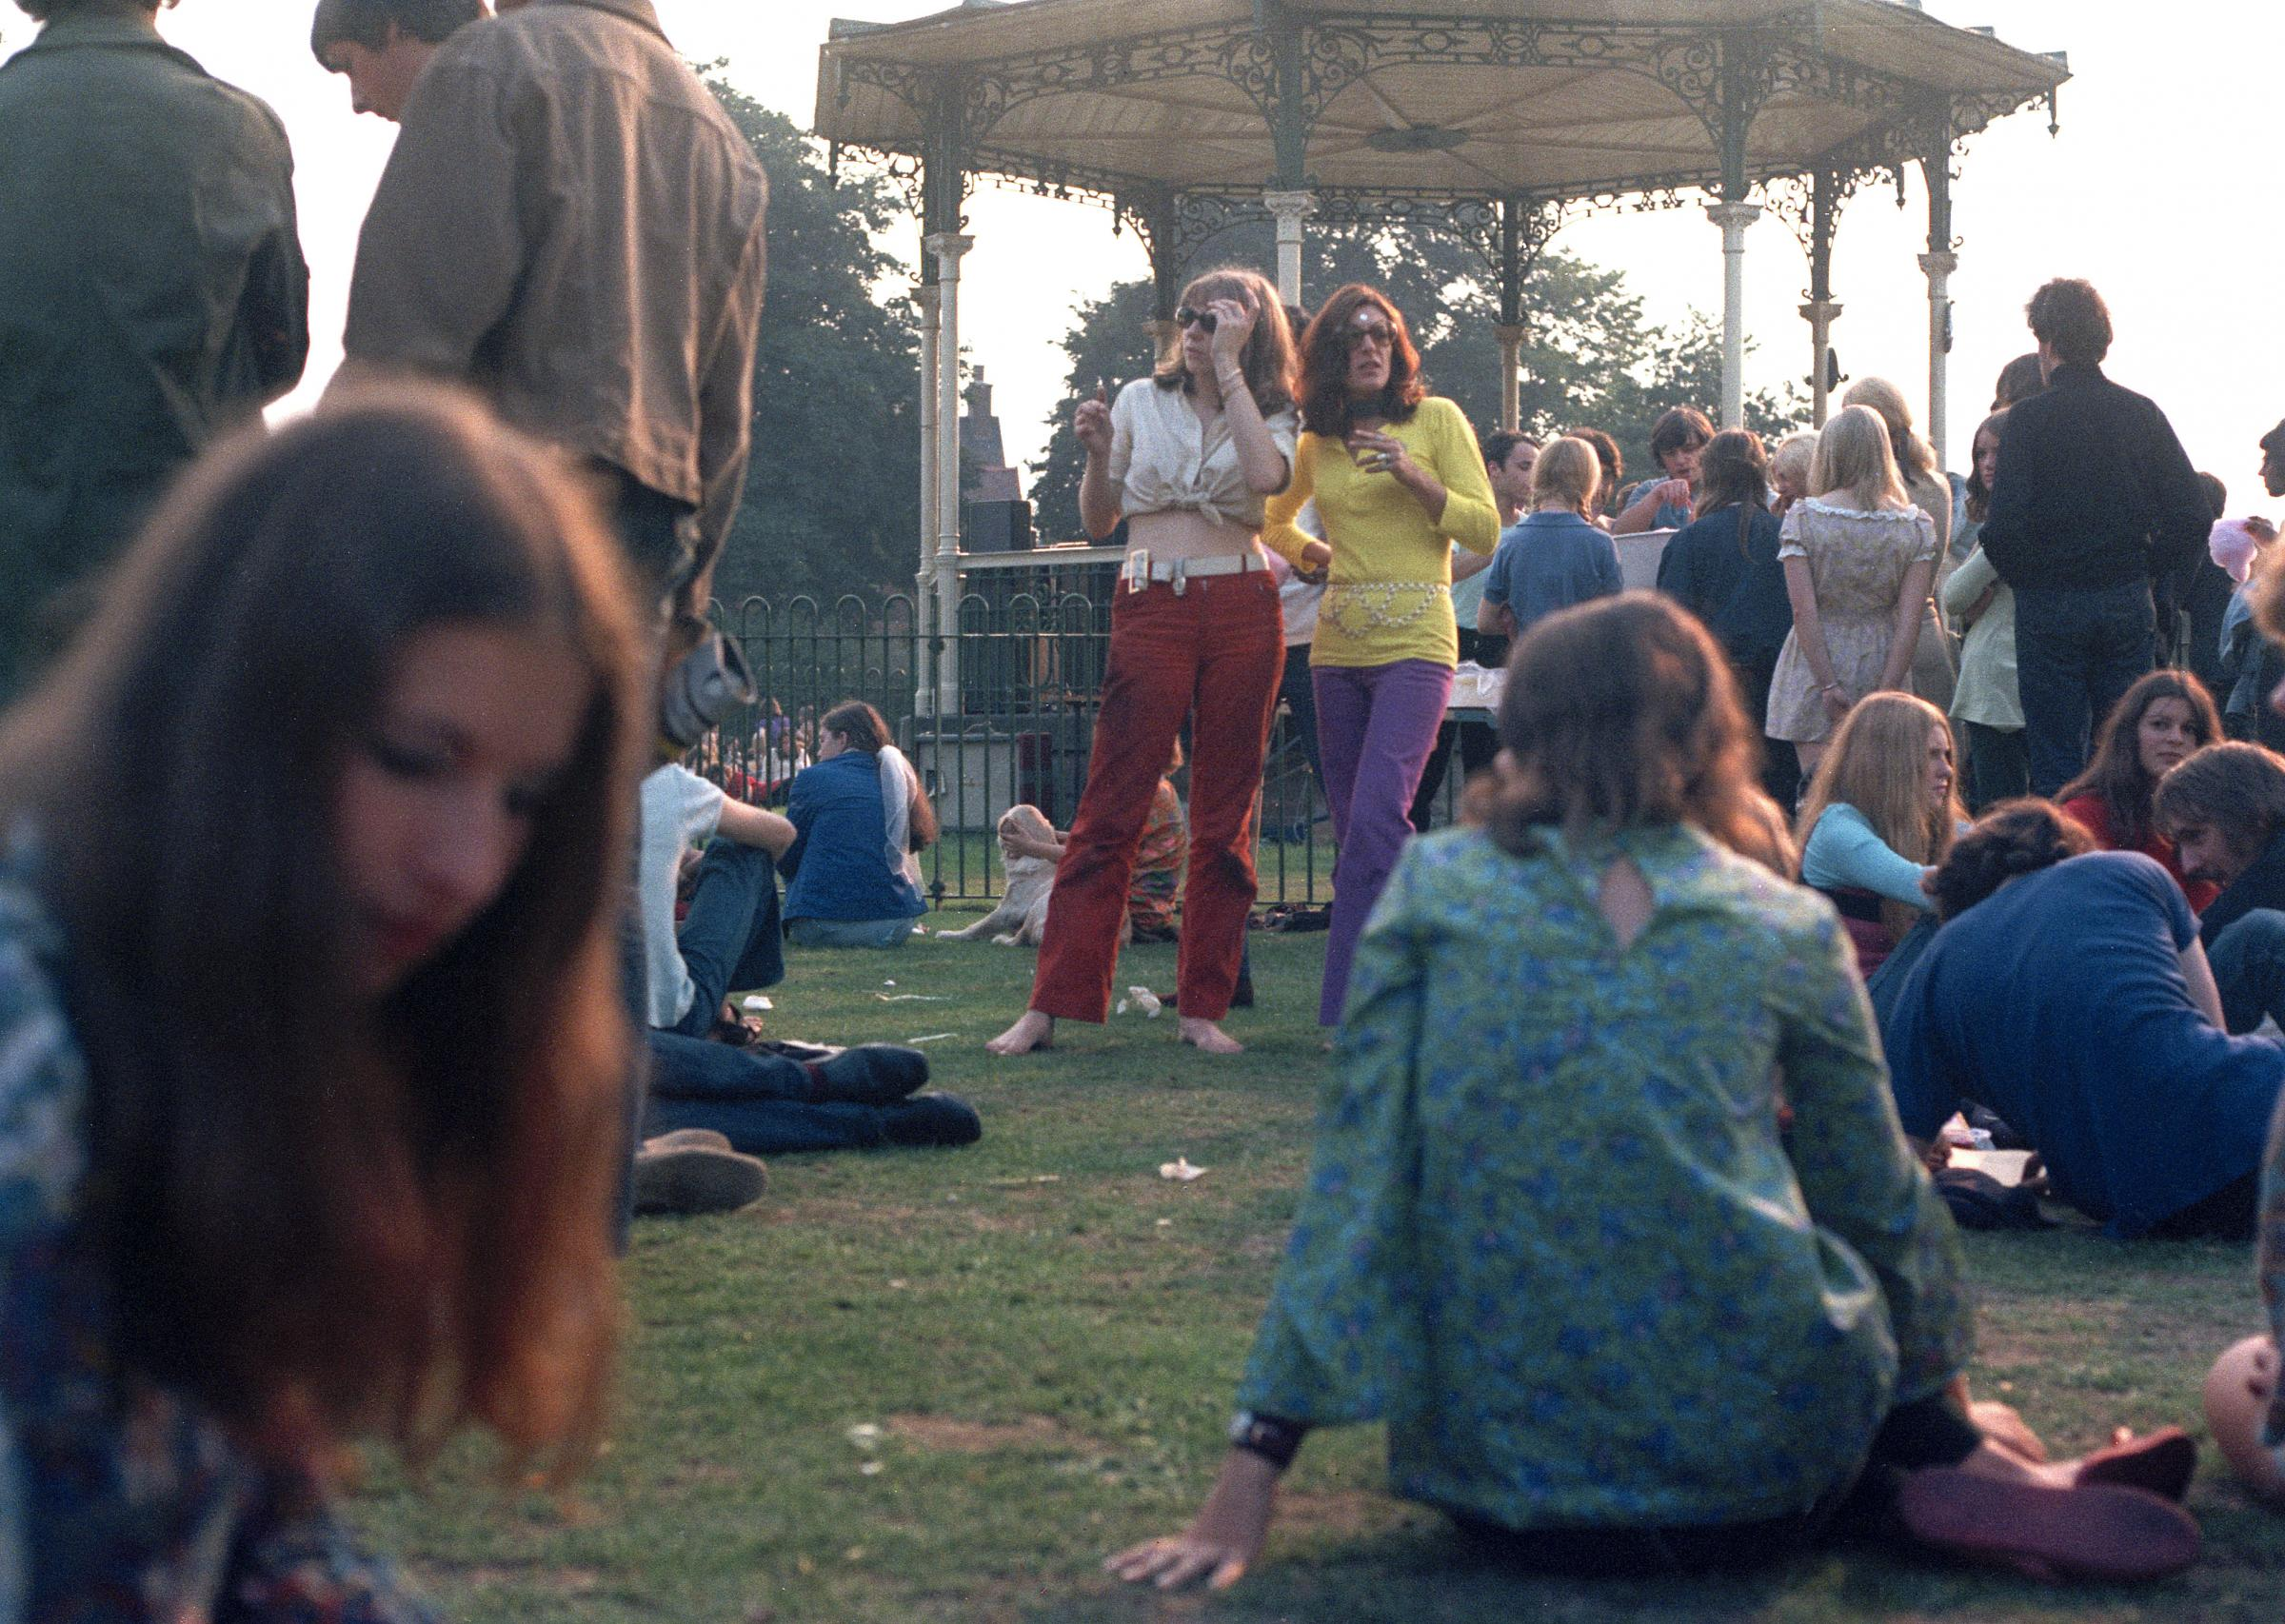 Angie Bowie and Mary Finnigan at the Free Festival in 1969